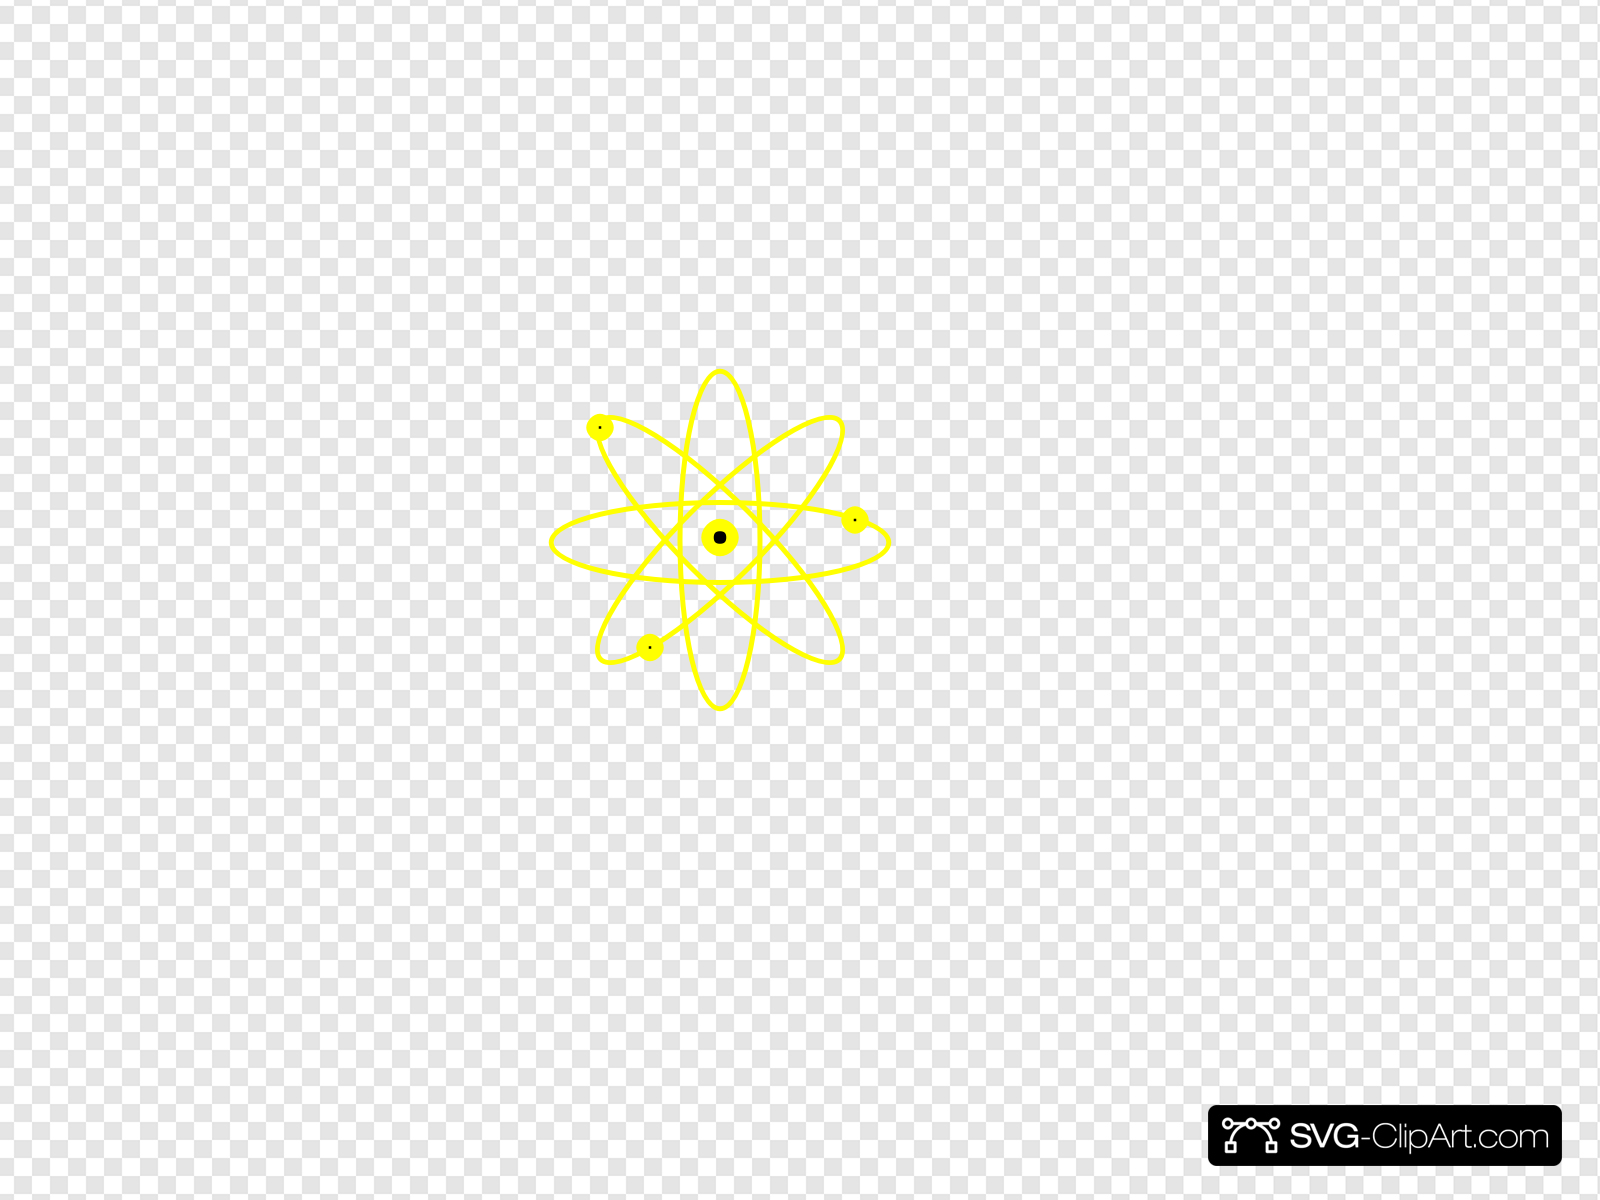 Clip art icon and. Atom clipart yellow